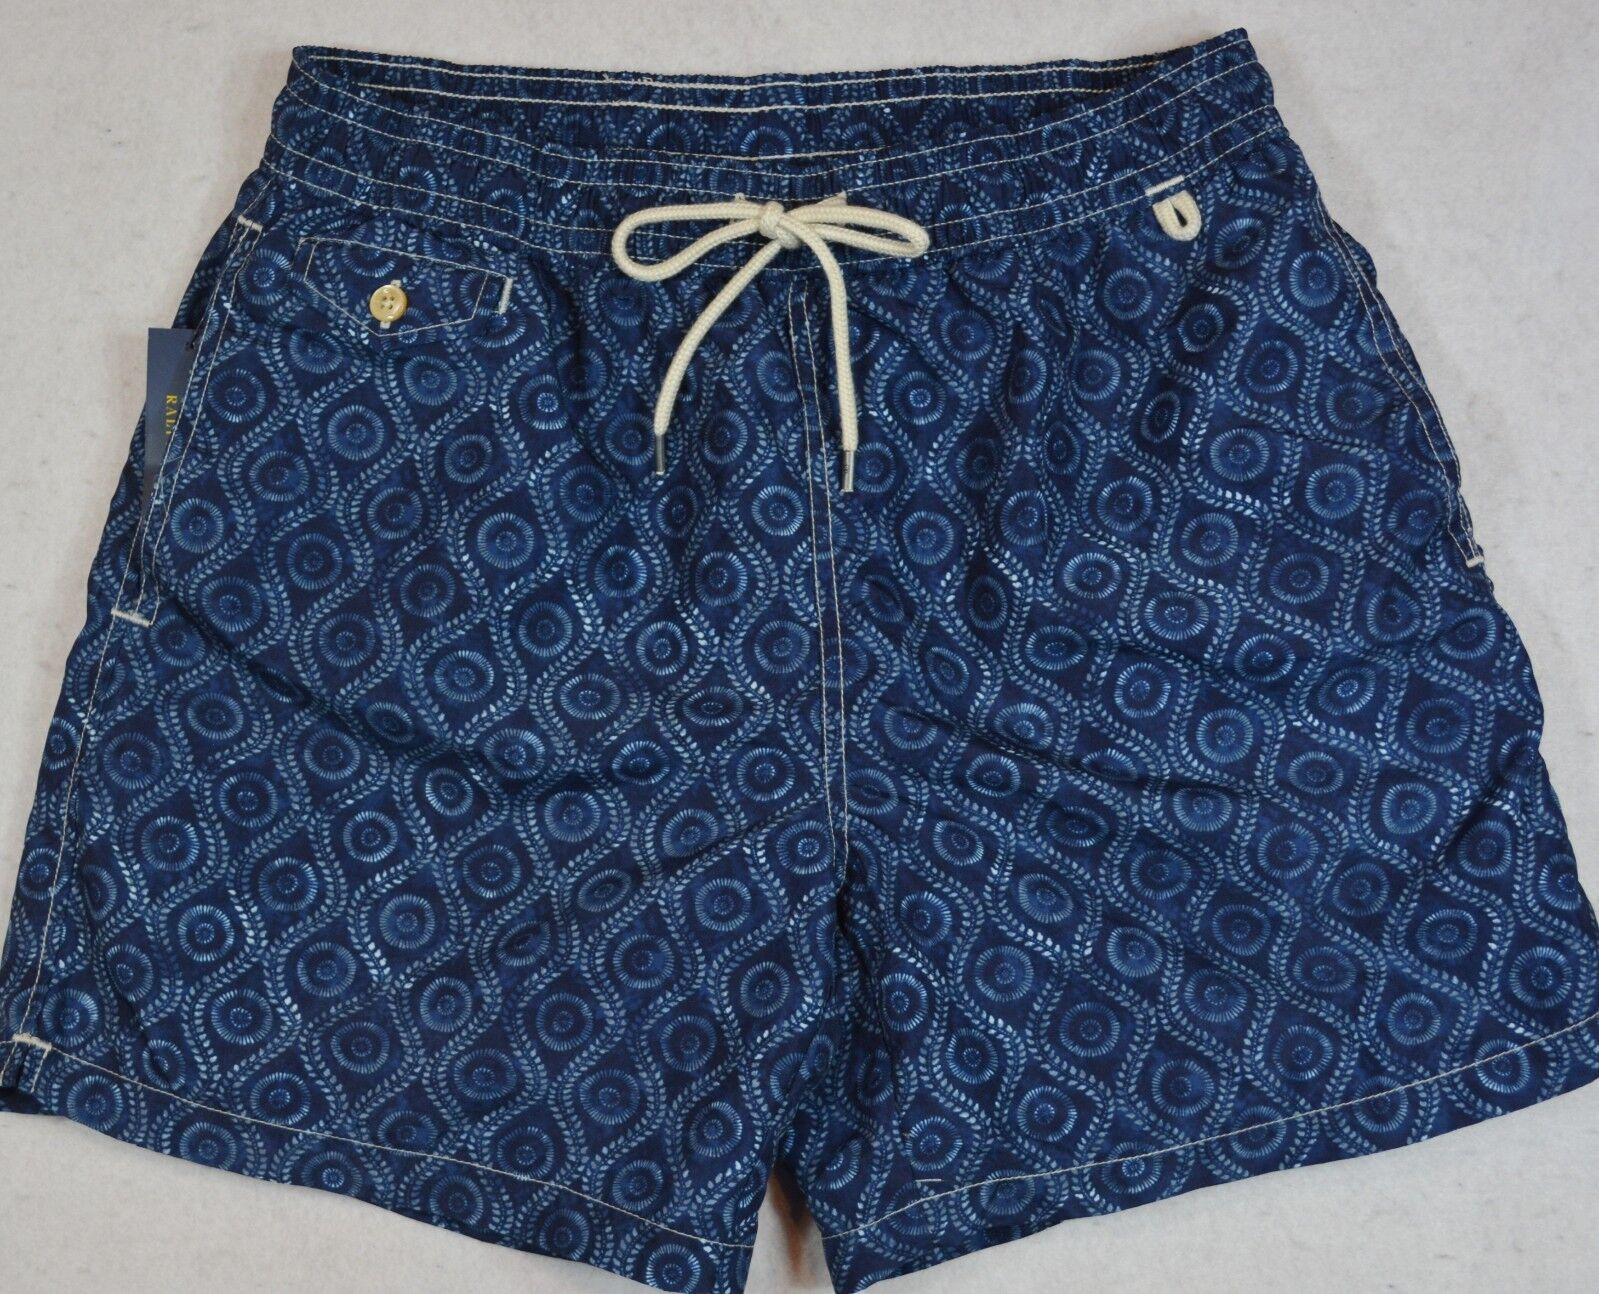 Polo Ralph Lauren Swim Trunks Briefs Shorts Navy Abstract Print S NWT